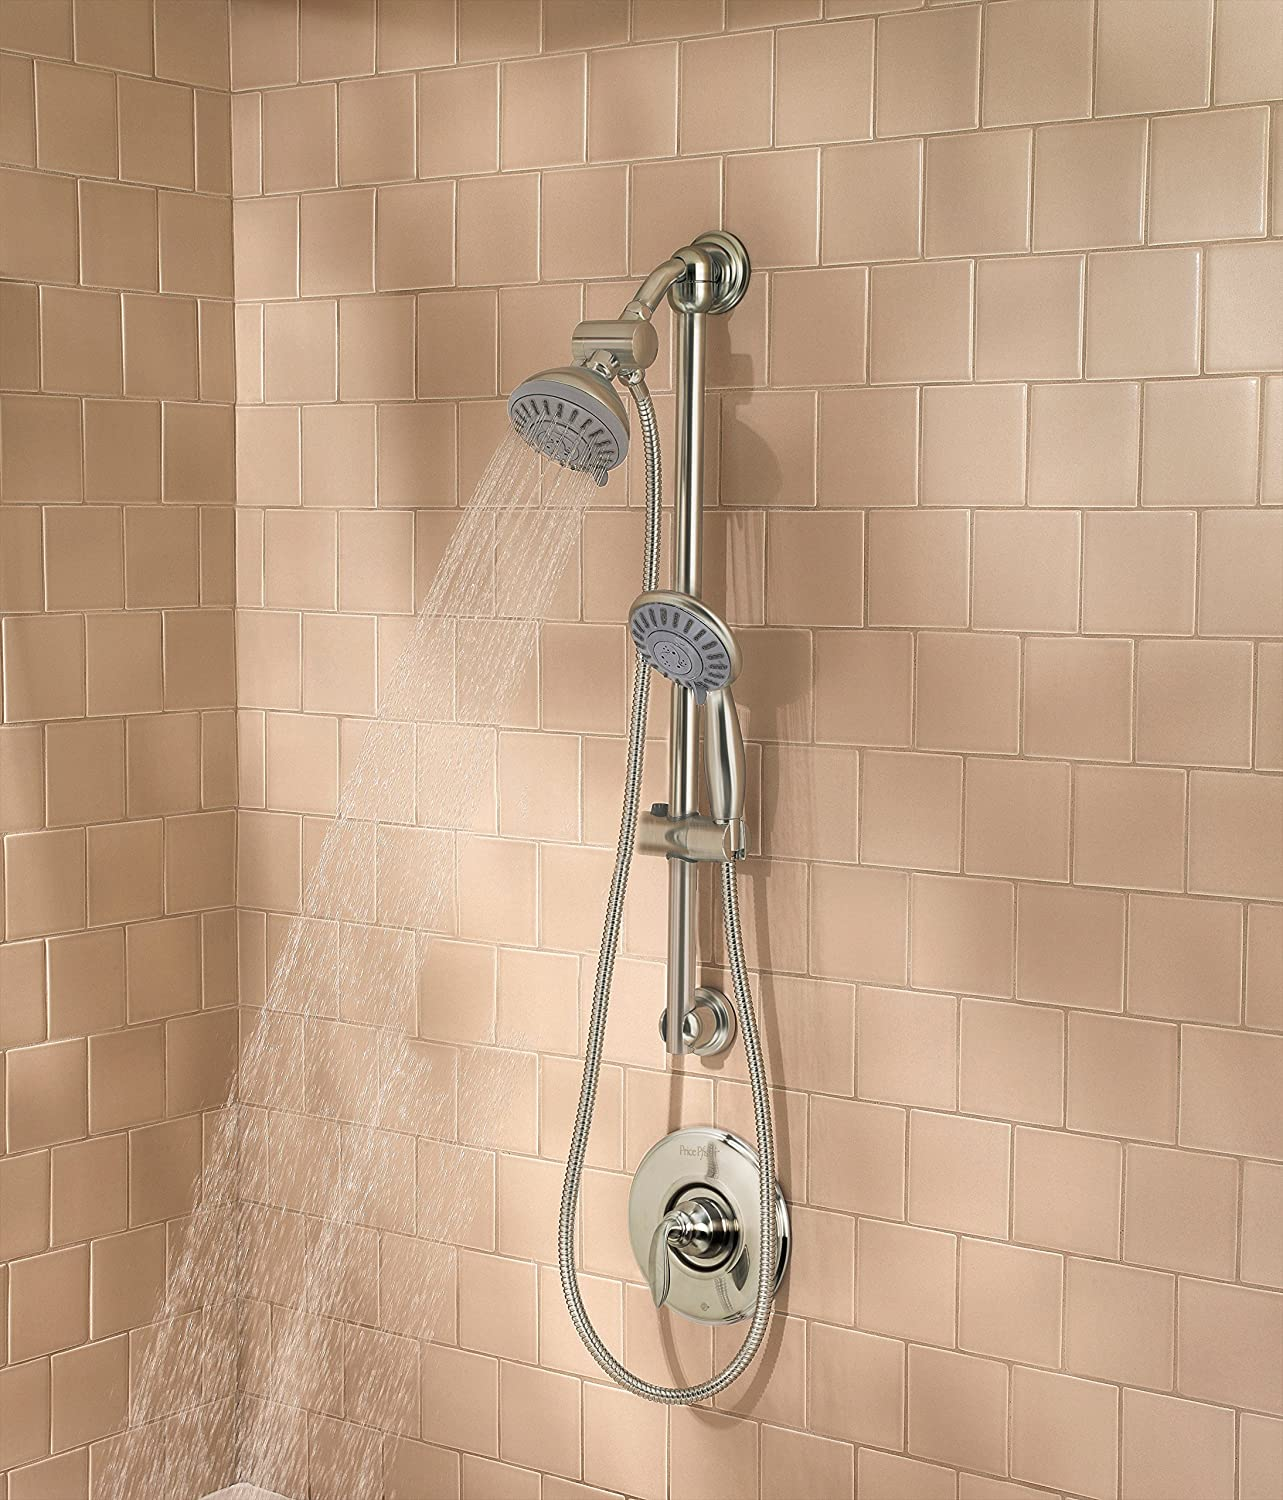 Pfister 3-Function Handheld Shower, Brushed Nickel - Shower Arms And ...